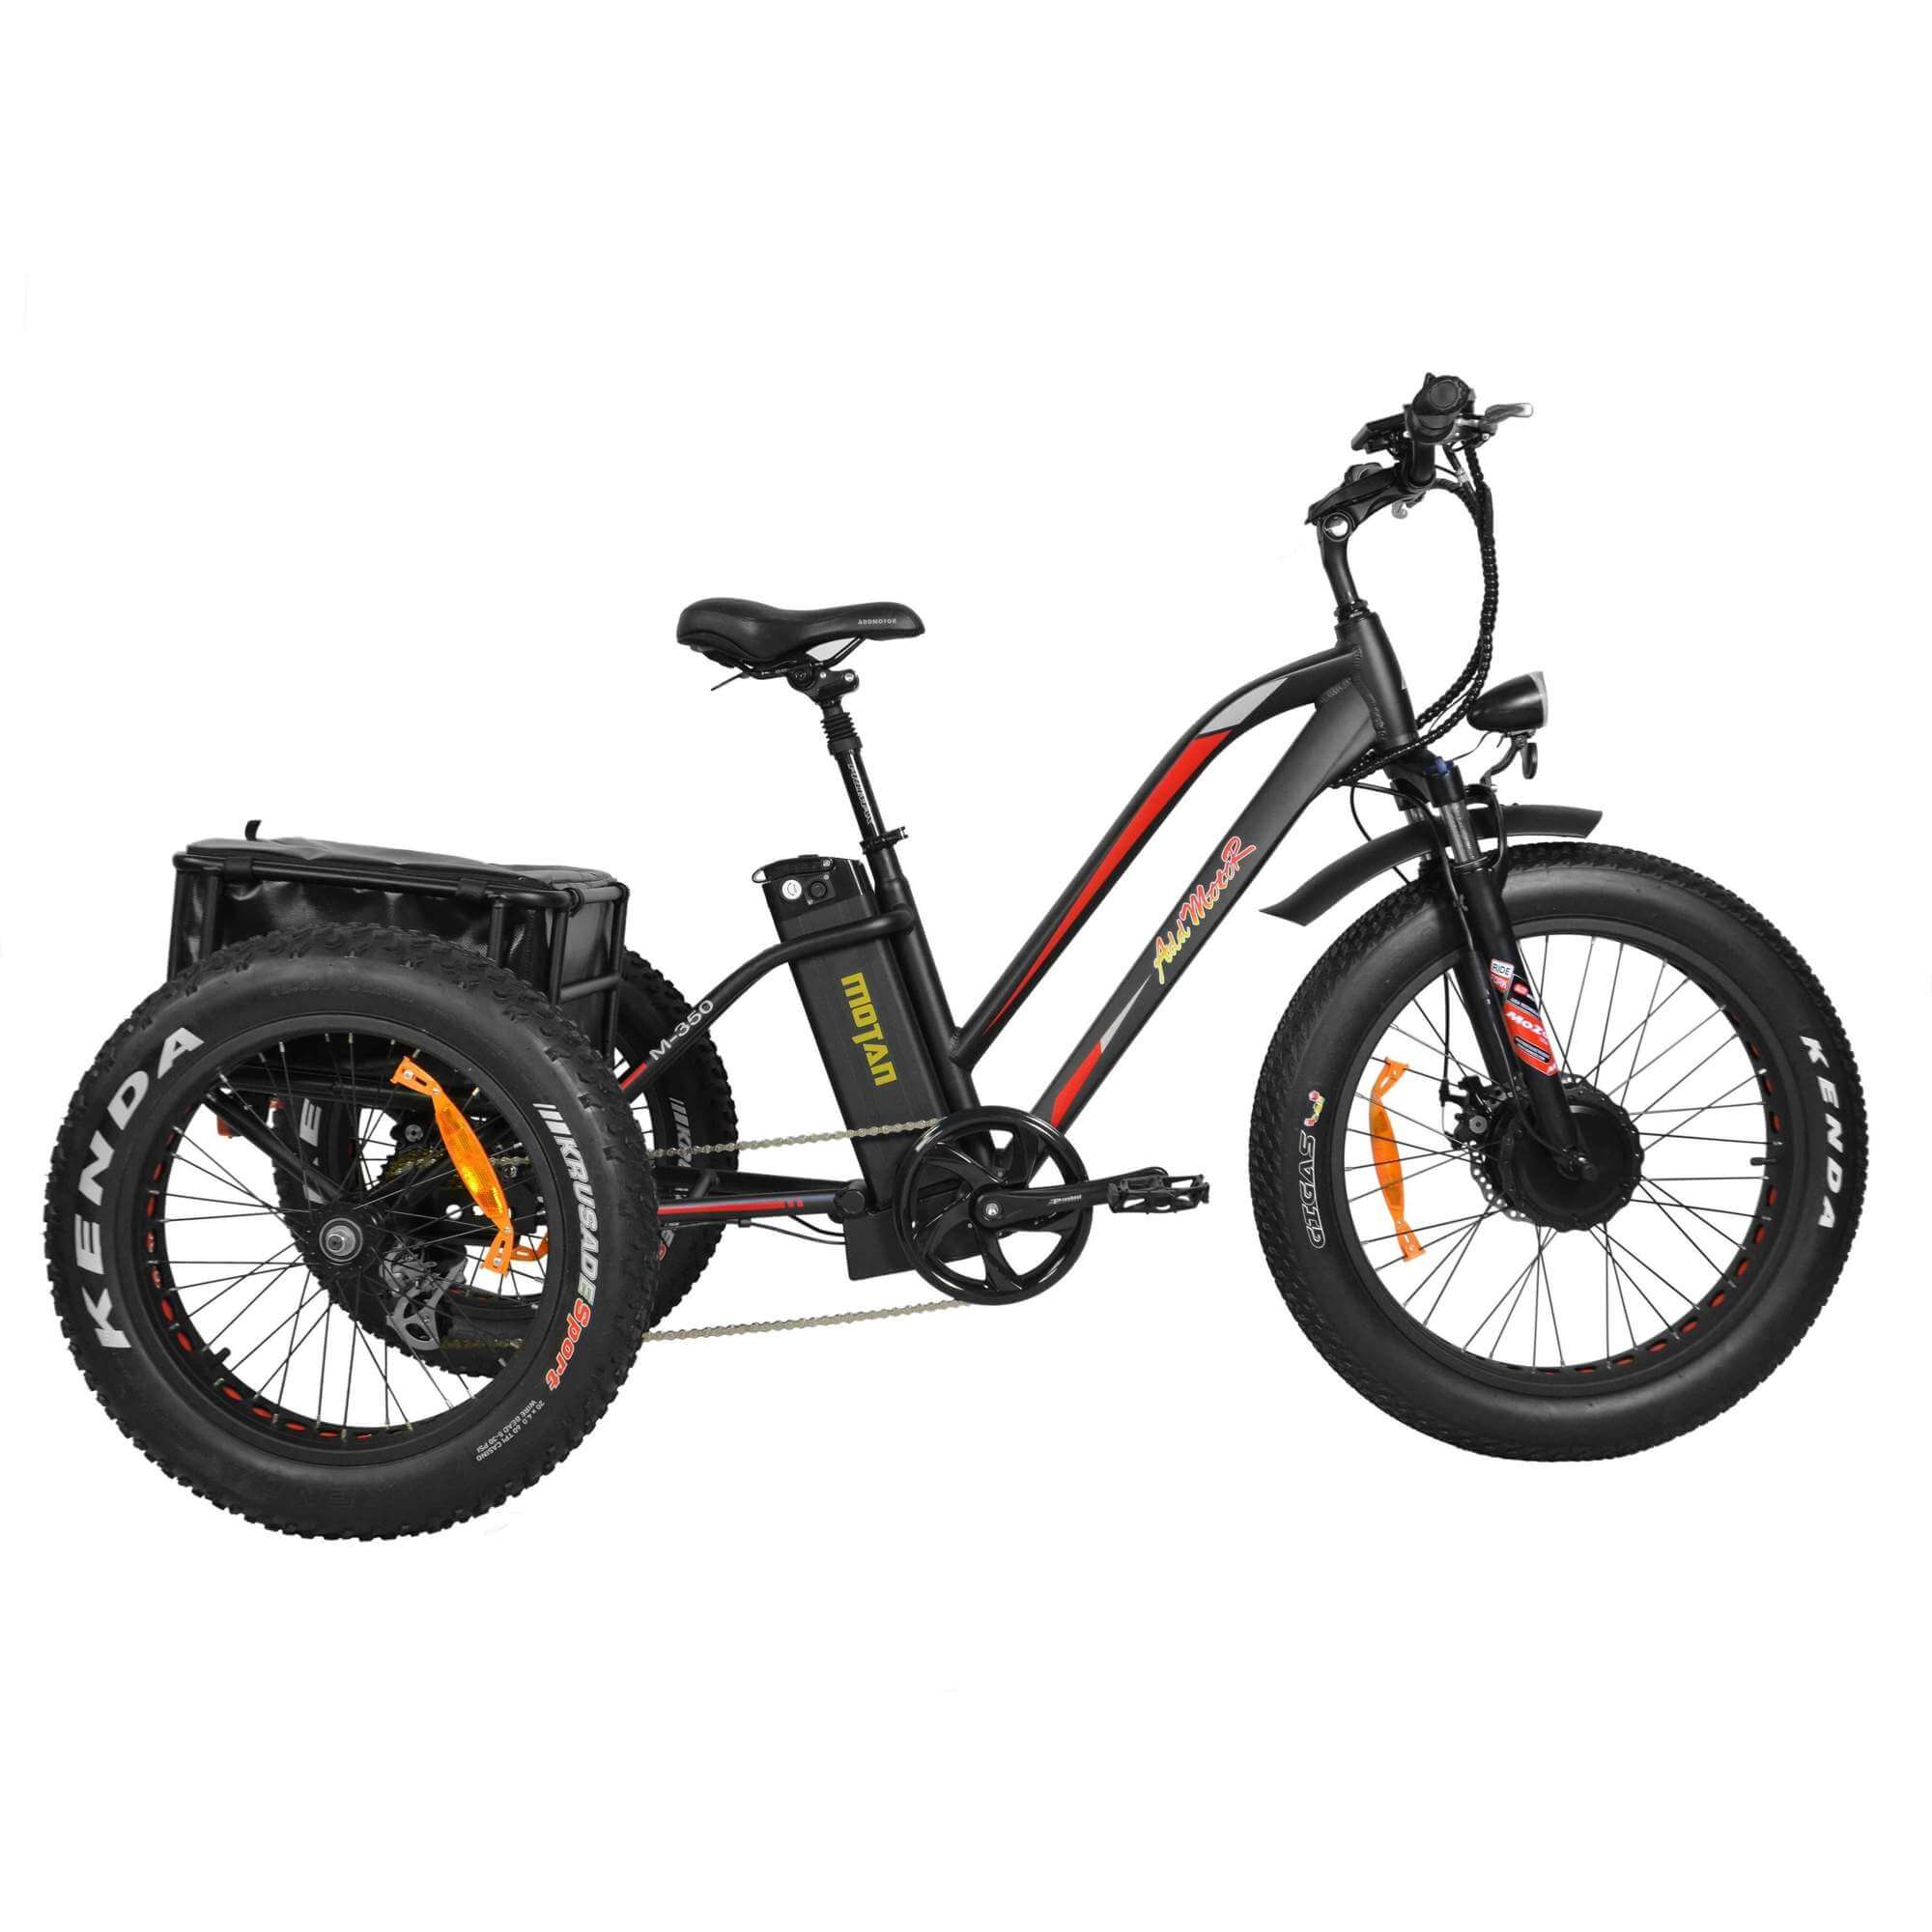 Really Good eBikes - #1 Online Electric Bike Retailer